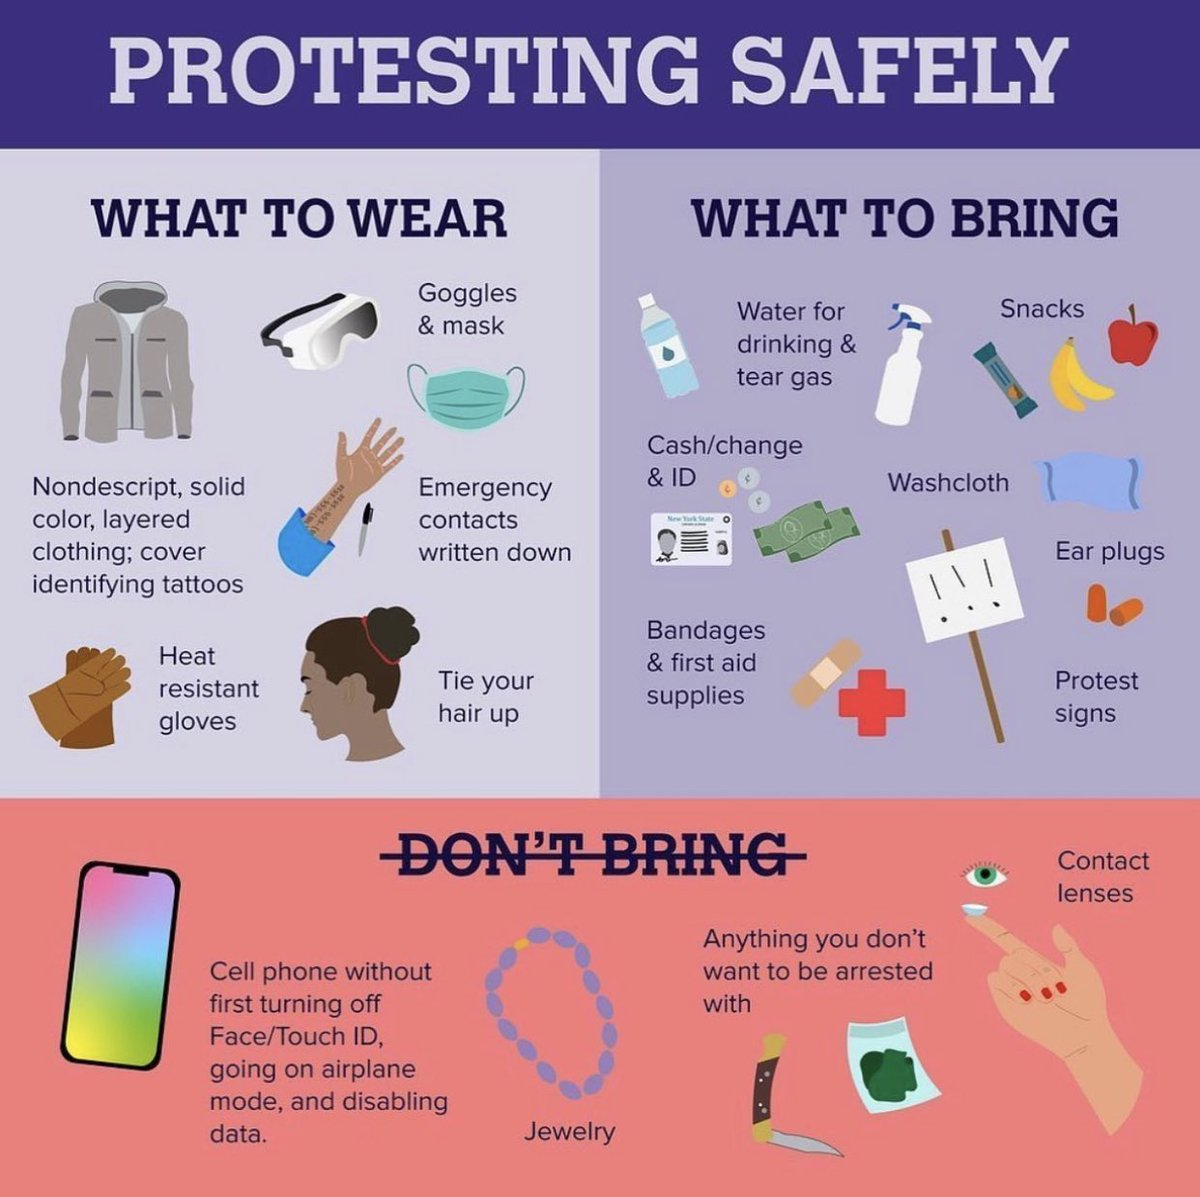 Protesting Safely: What to Wear, What To Bring, What You Shouldn't Bring